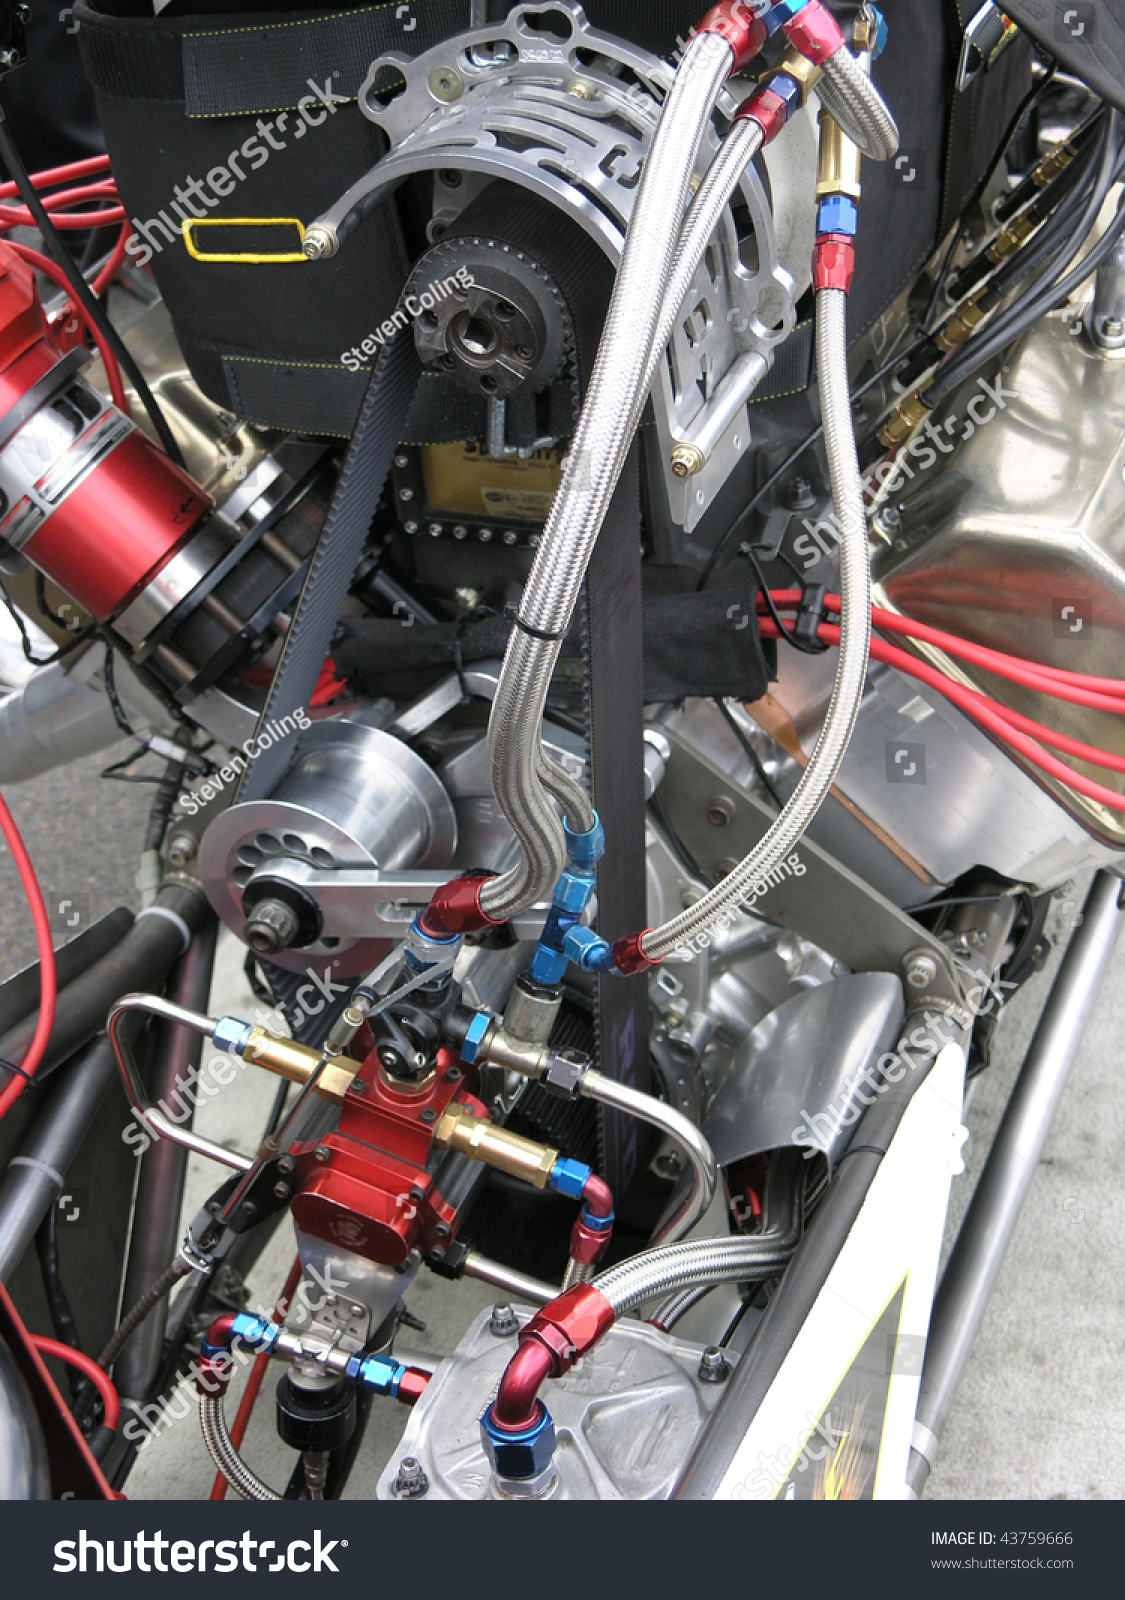 hight resolution of closeup of a top fuel drag car engine